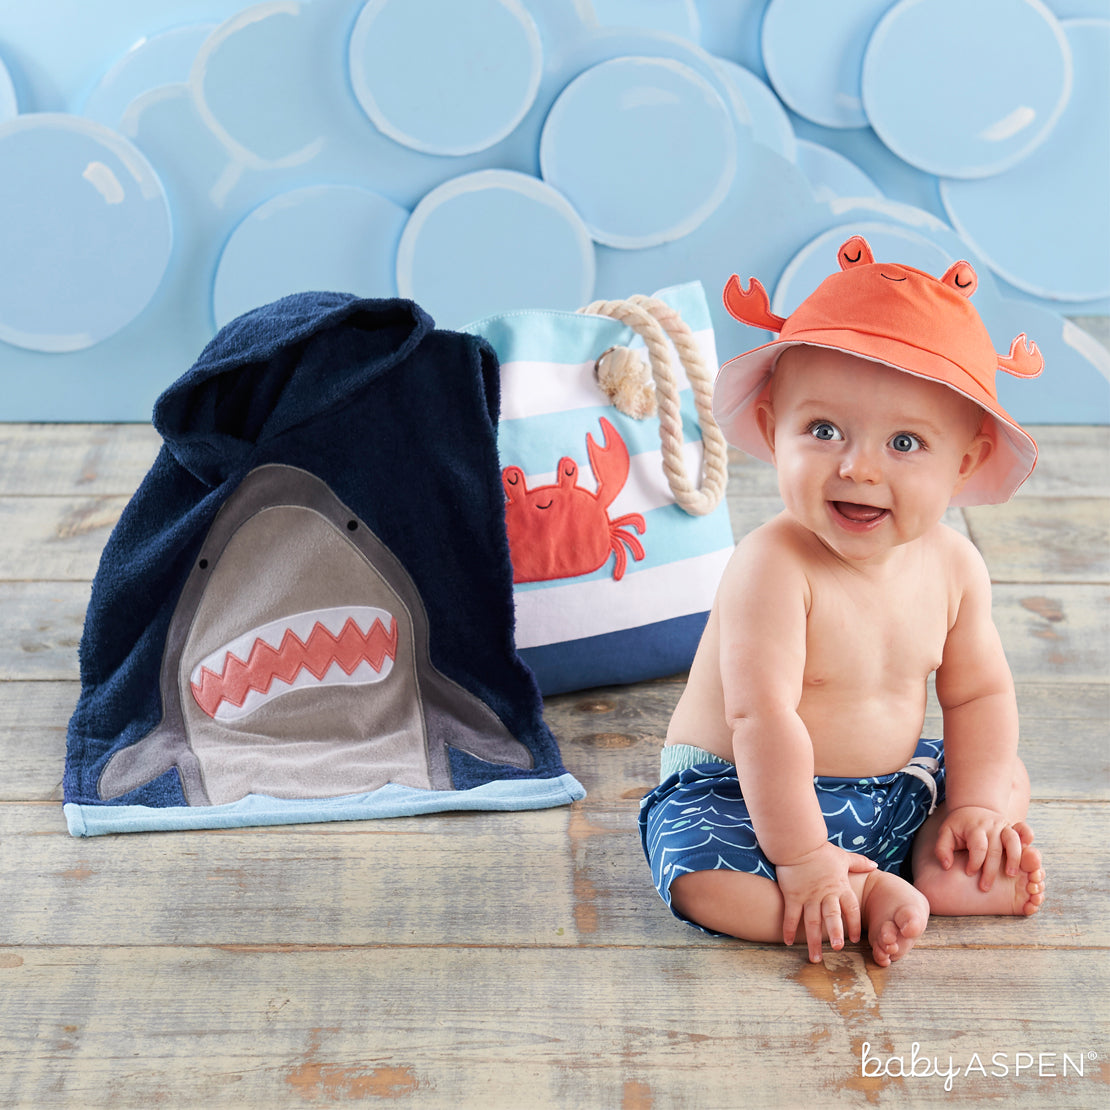 Shark 4-Piece Beach Gift Set with Canvas Tote for Mom | Brilliant Beach Baby Gifts + A Giveaway | Baby Aspen